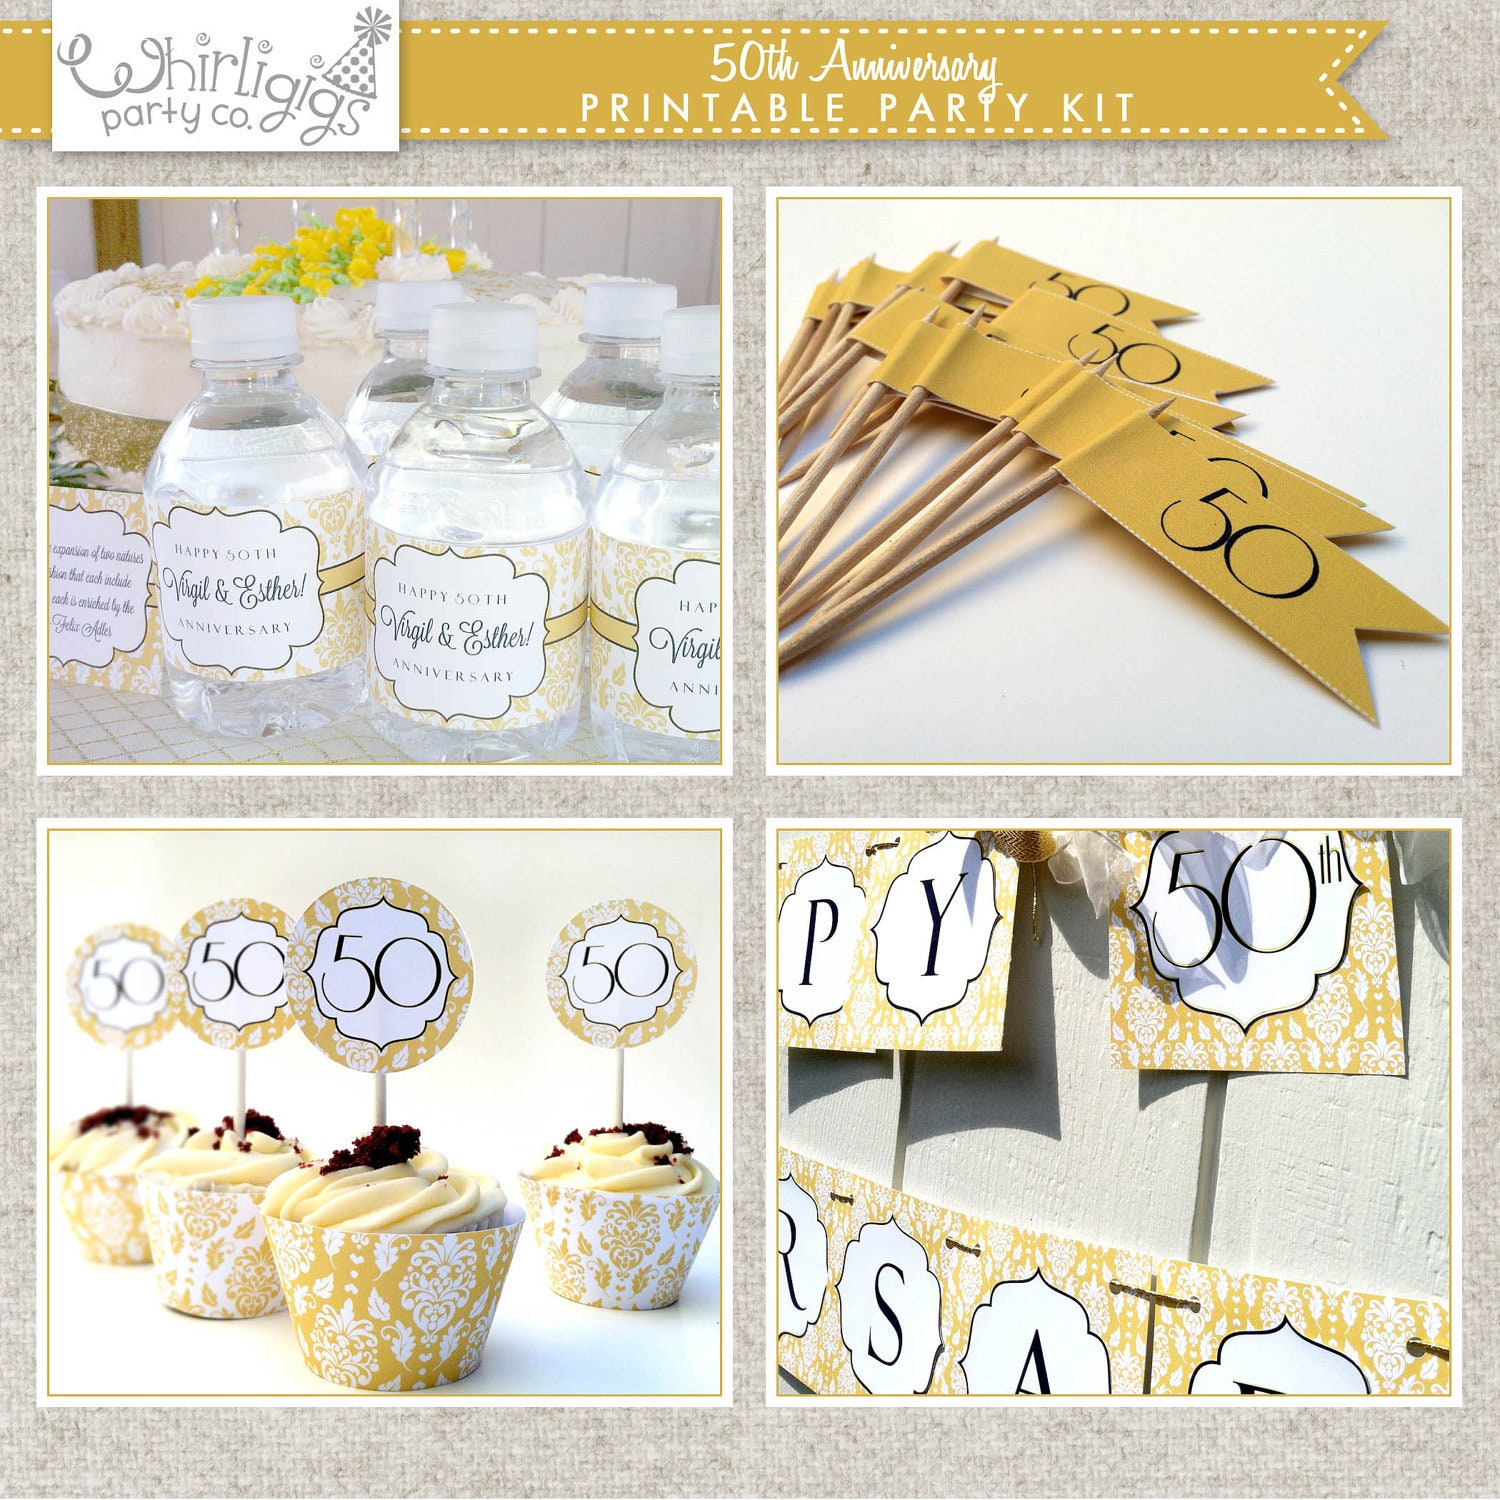 50th wedding anniversary decorations bing images for 50 wedding anniversary decoration ideas